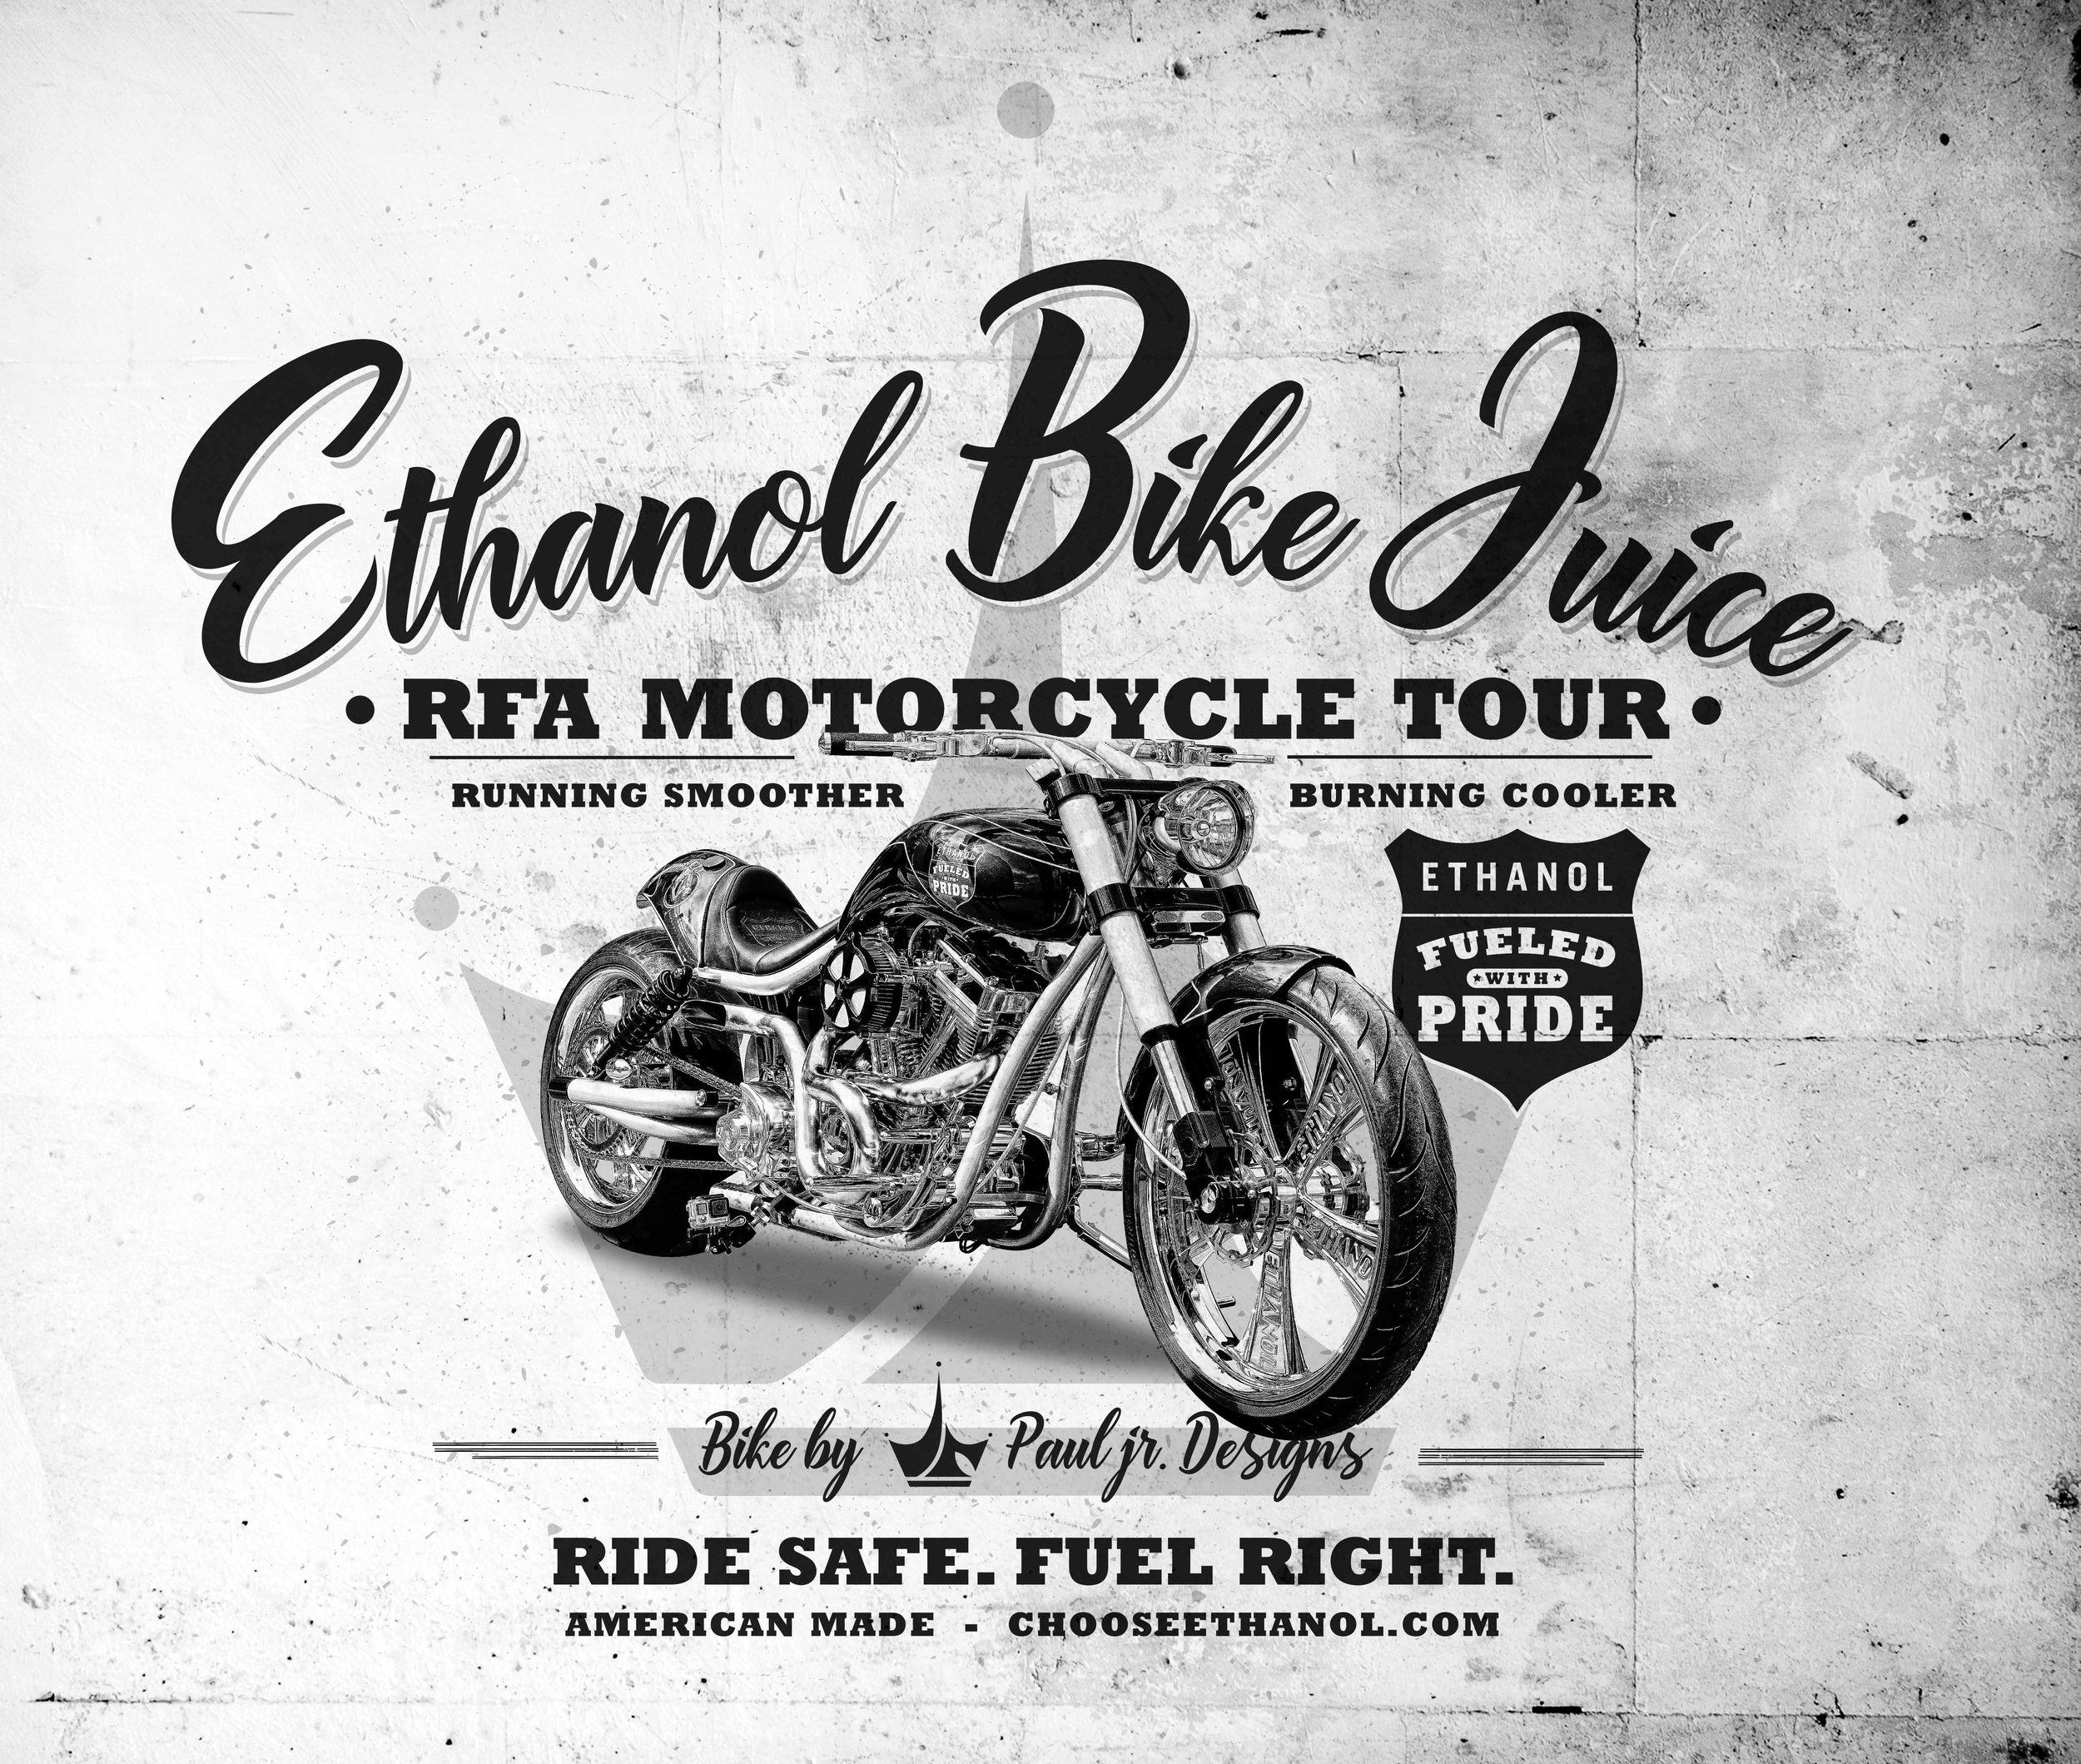 Design for Ethanol Fueled With Pride RFA Motorcycle Tour